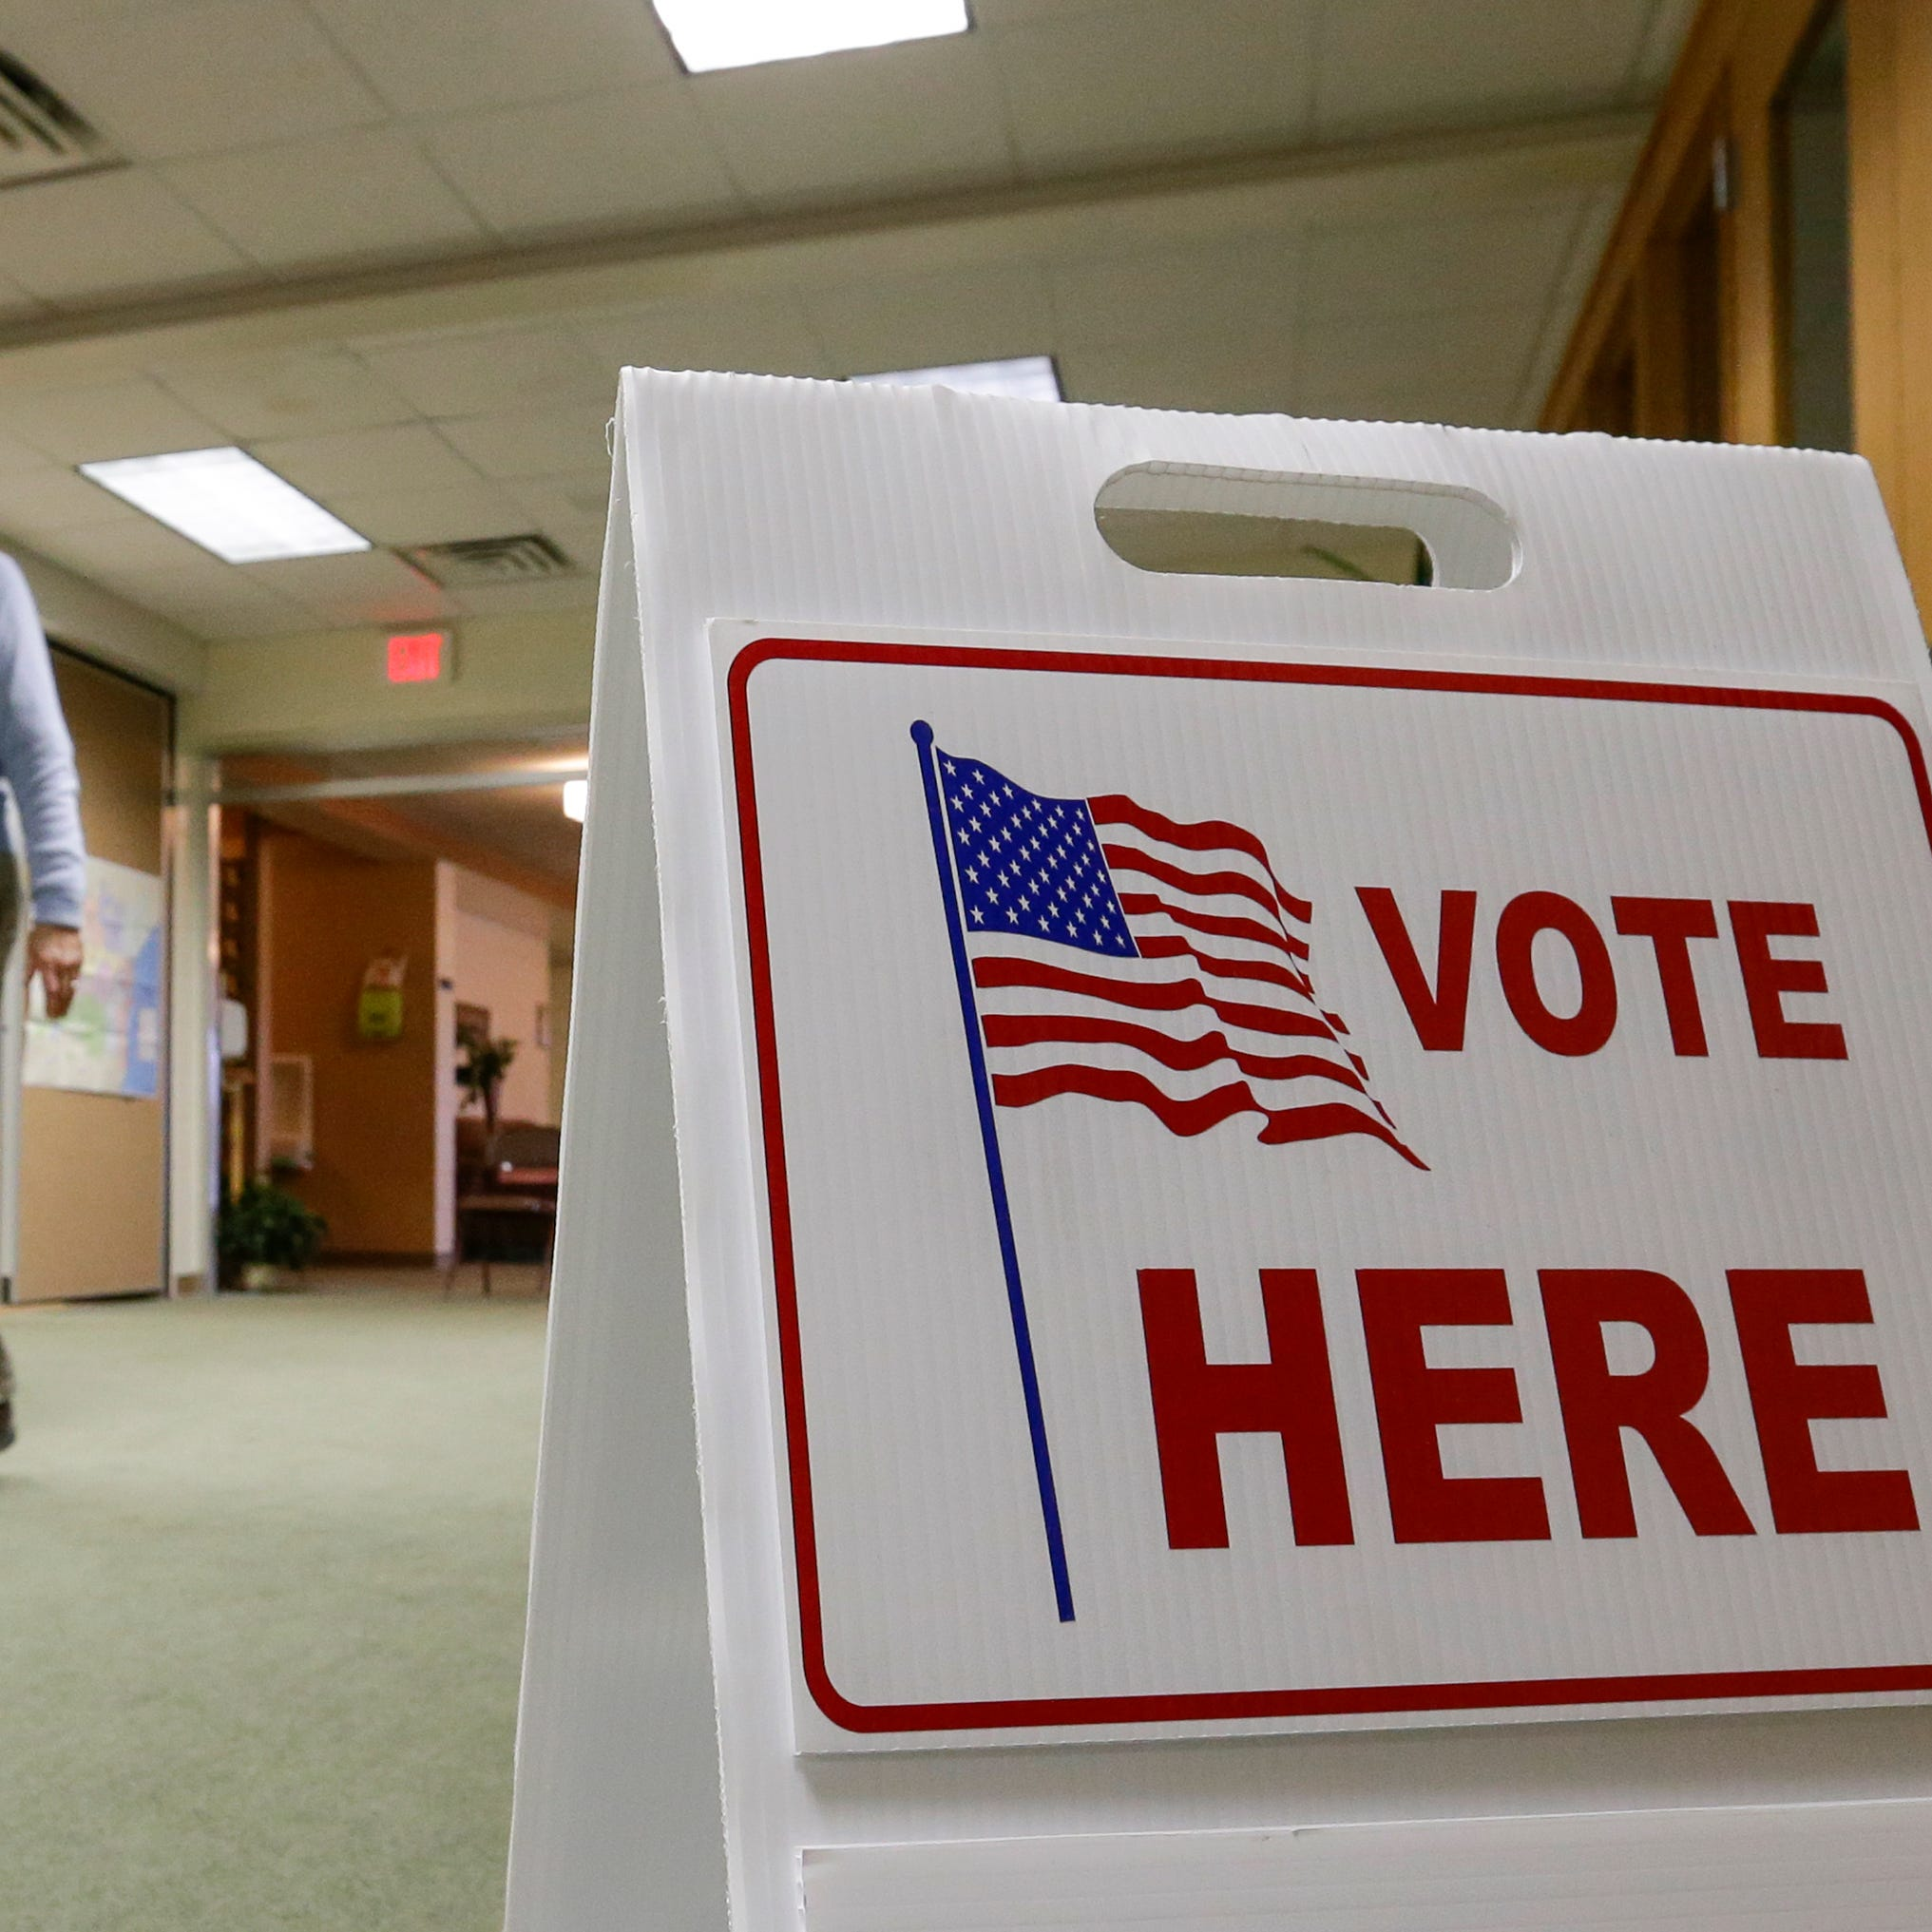 Could Wisconsin's voter turnout be higher than ever in 2020? All the ingredients are there